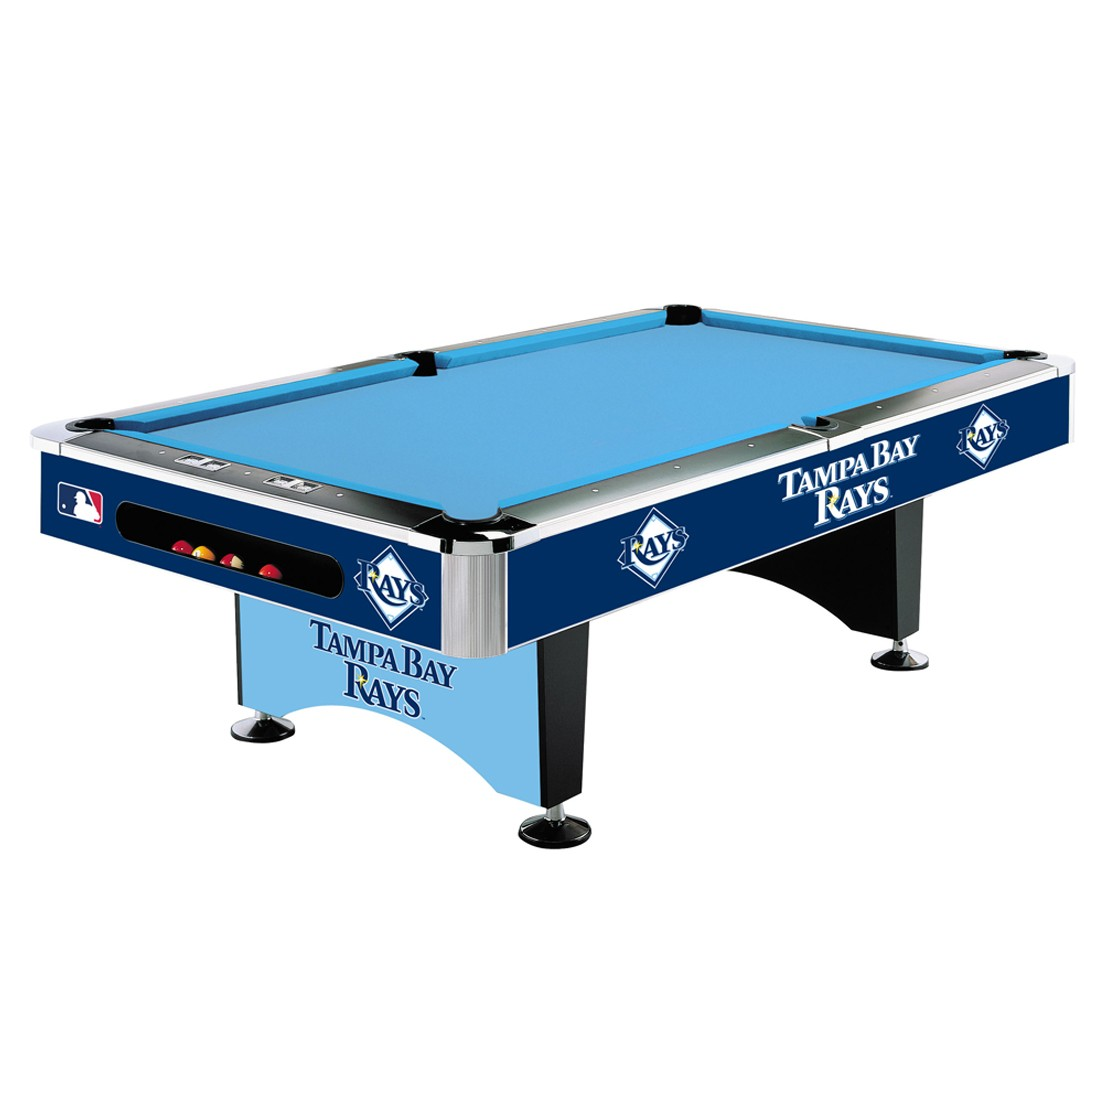 TAMPA BAY RAYS 8-FT. POOL TABLE